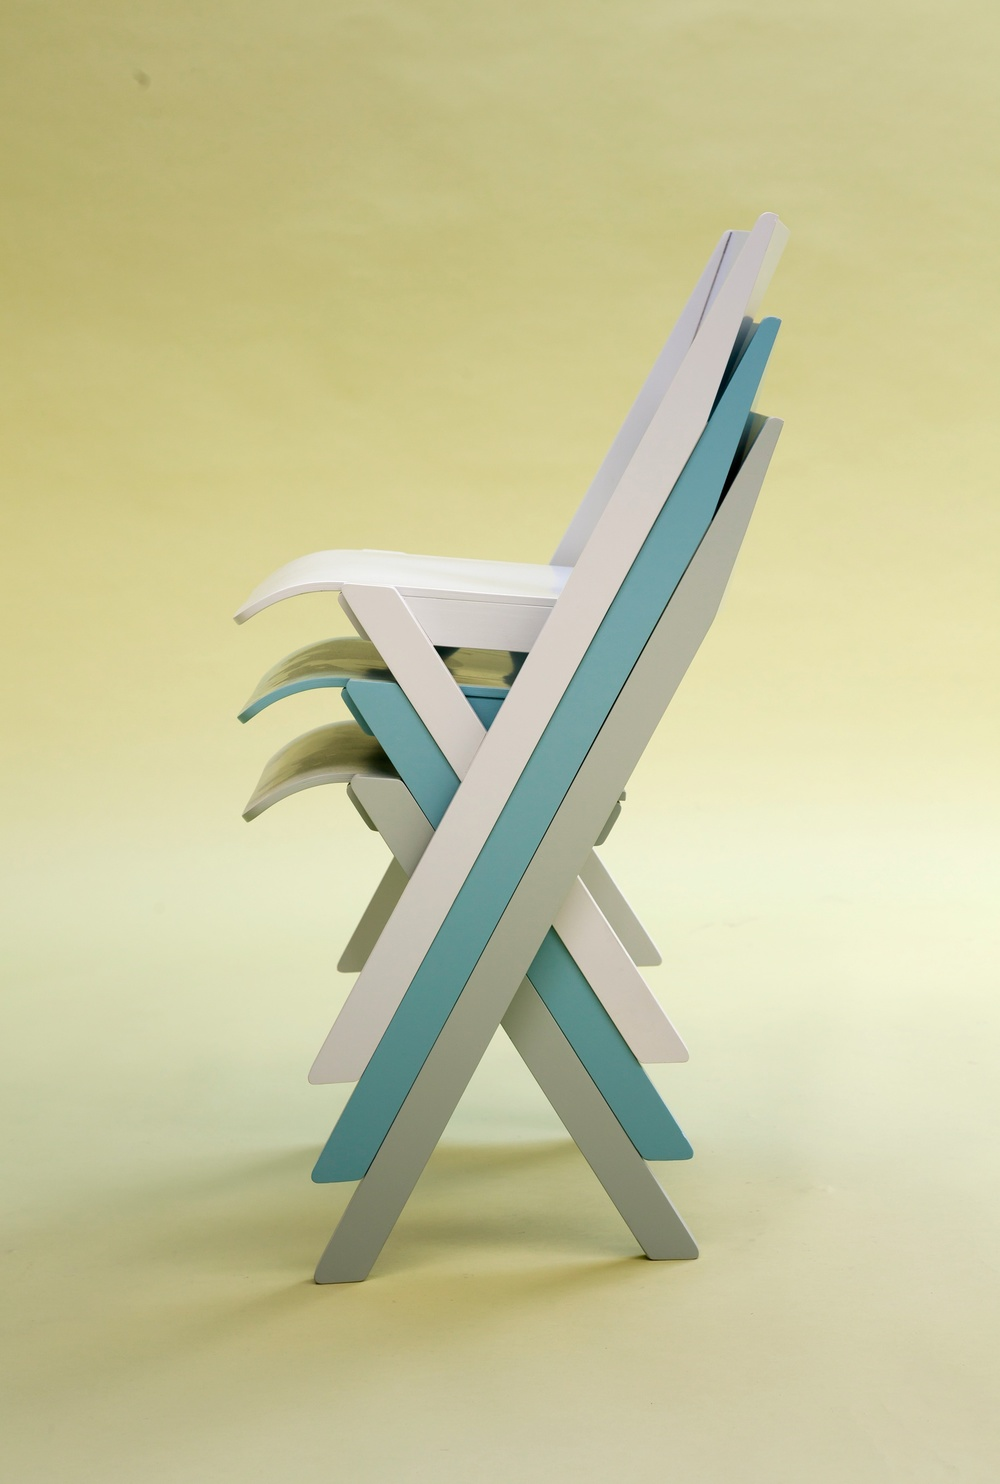 Fogo_chair_stack_side_view.jpg